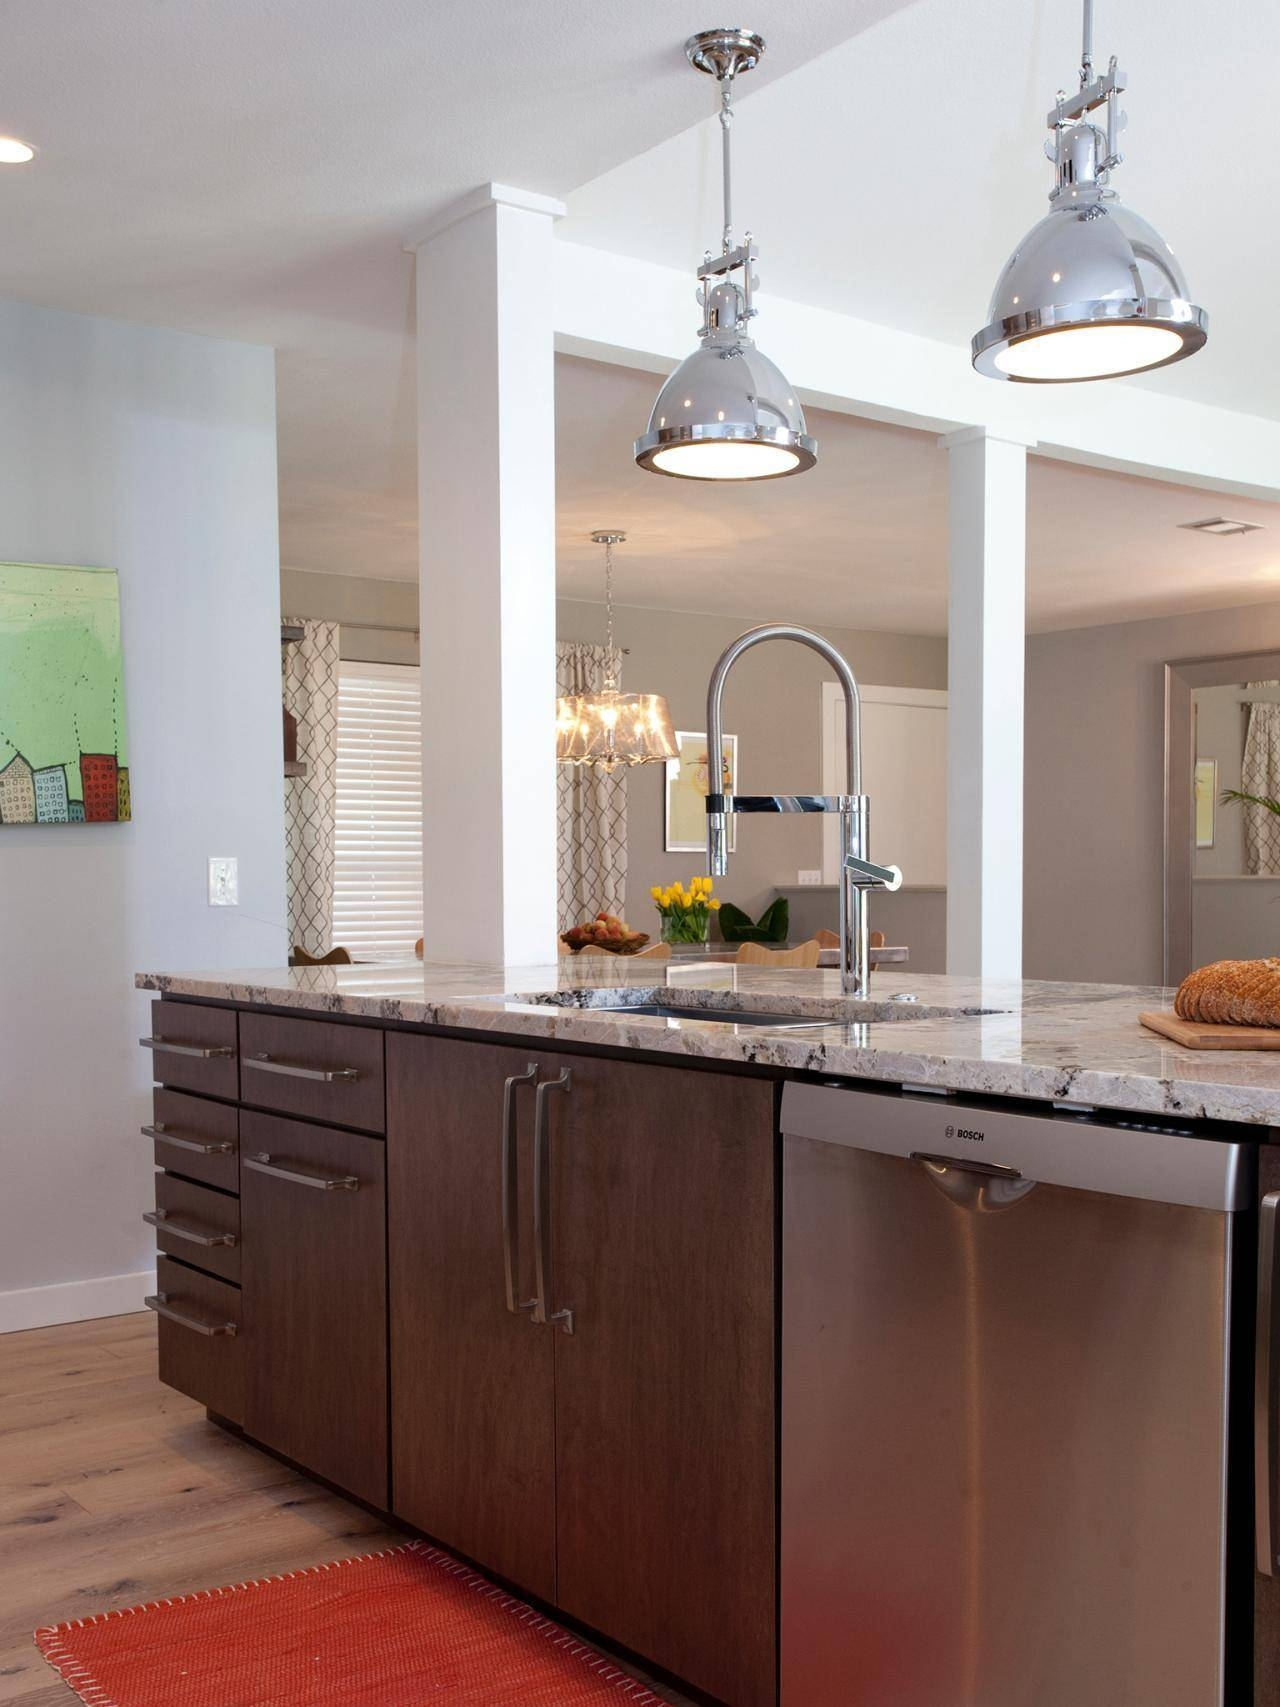 Wonderful Stainless Steel Pendant Light In House Decor Ideas pertaining to Stainless Steel Kitchen Pendant Lights (Image 15 of 15)